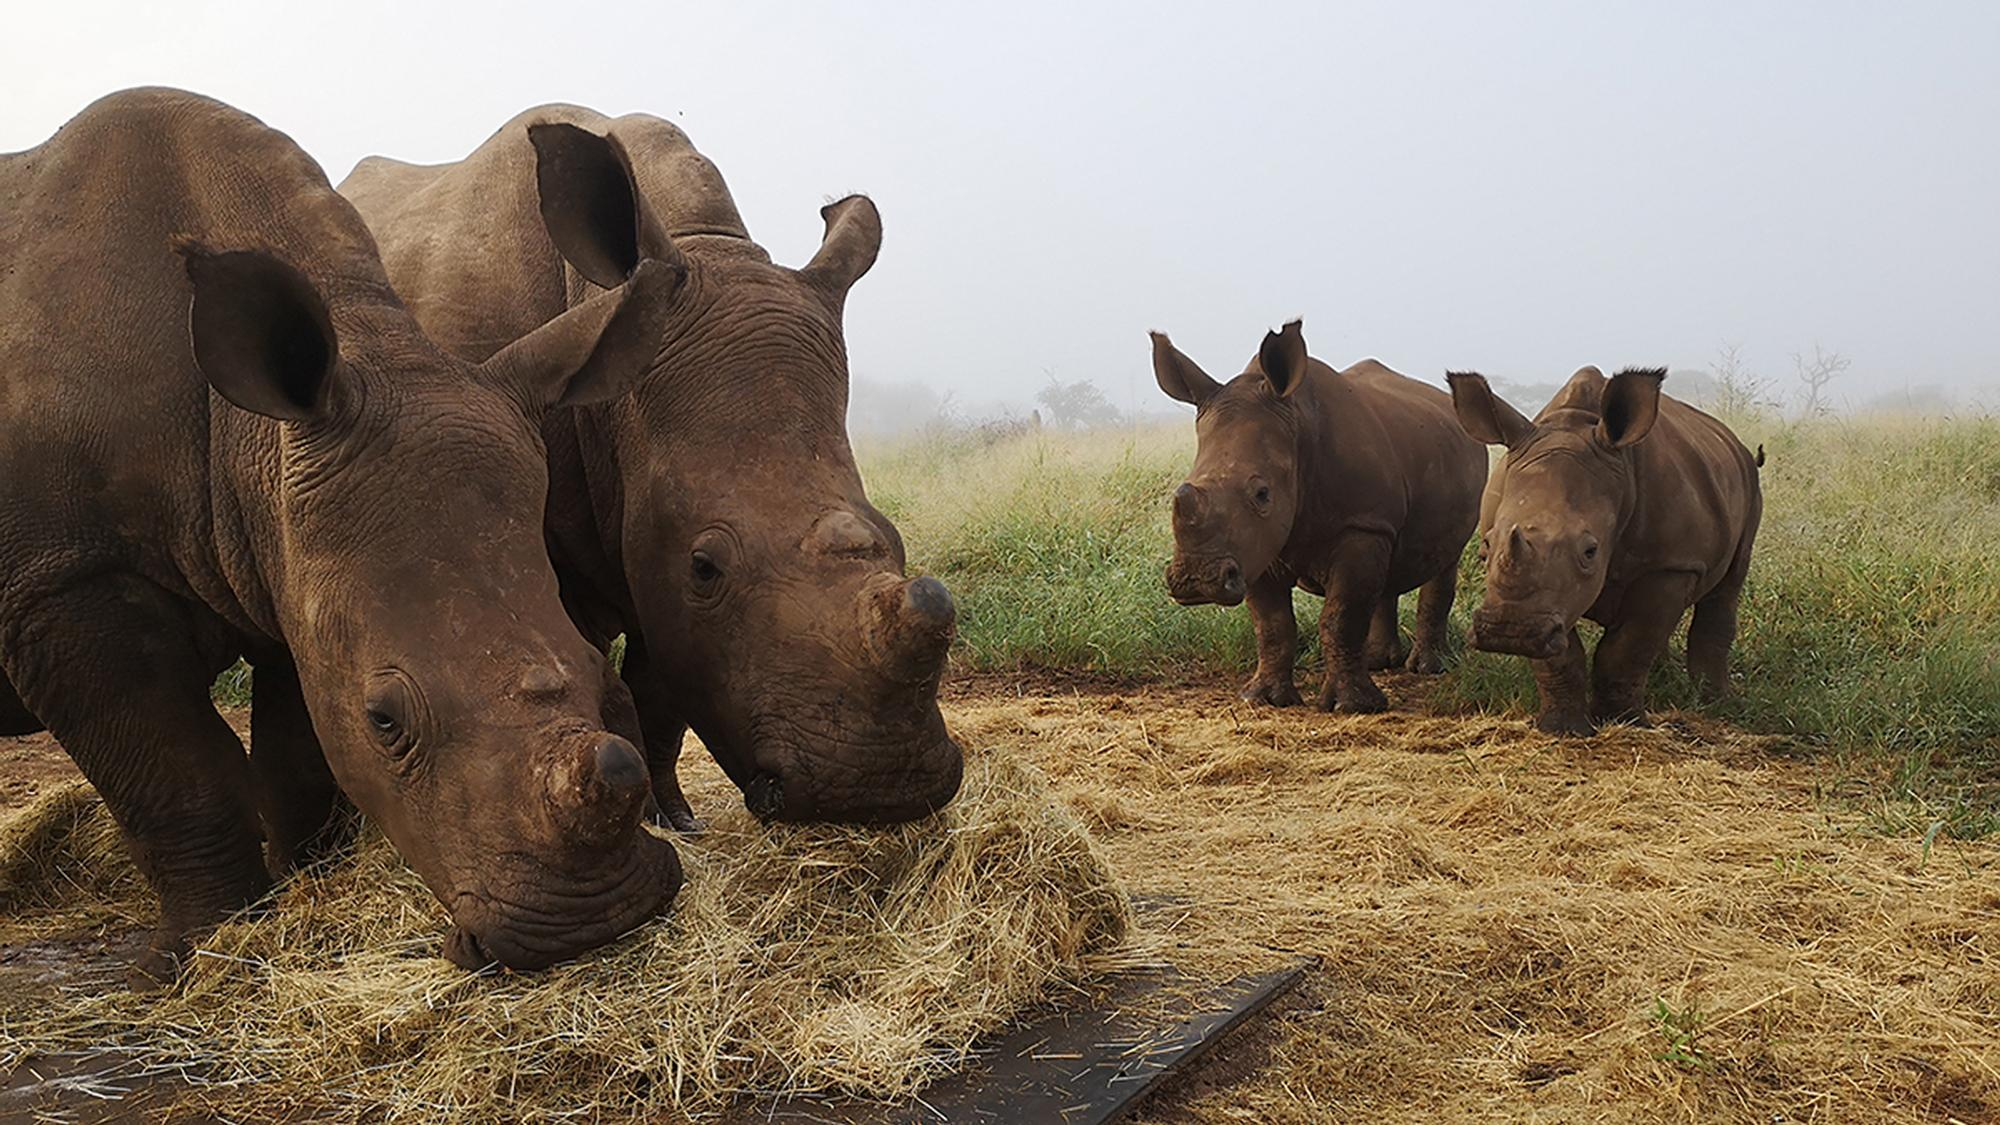 Every Rhino Counts - The Importance of Rewilding Rhinos